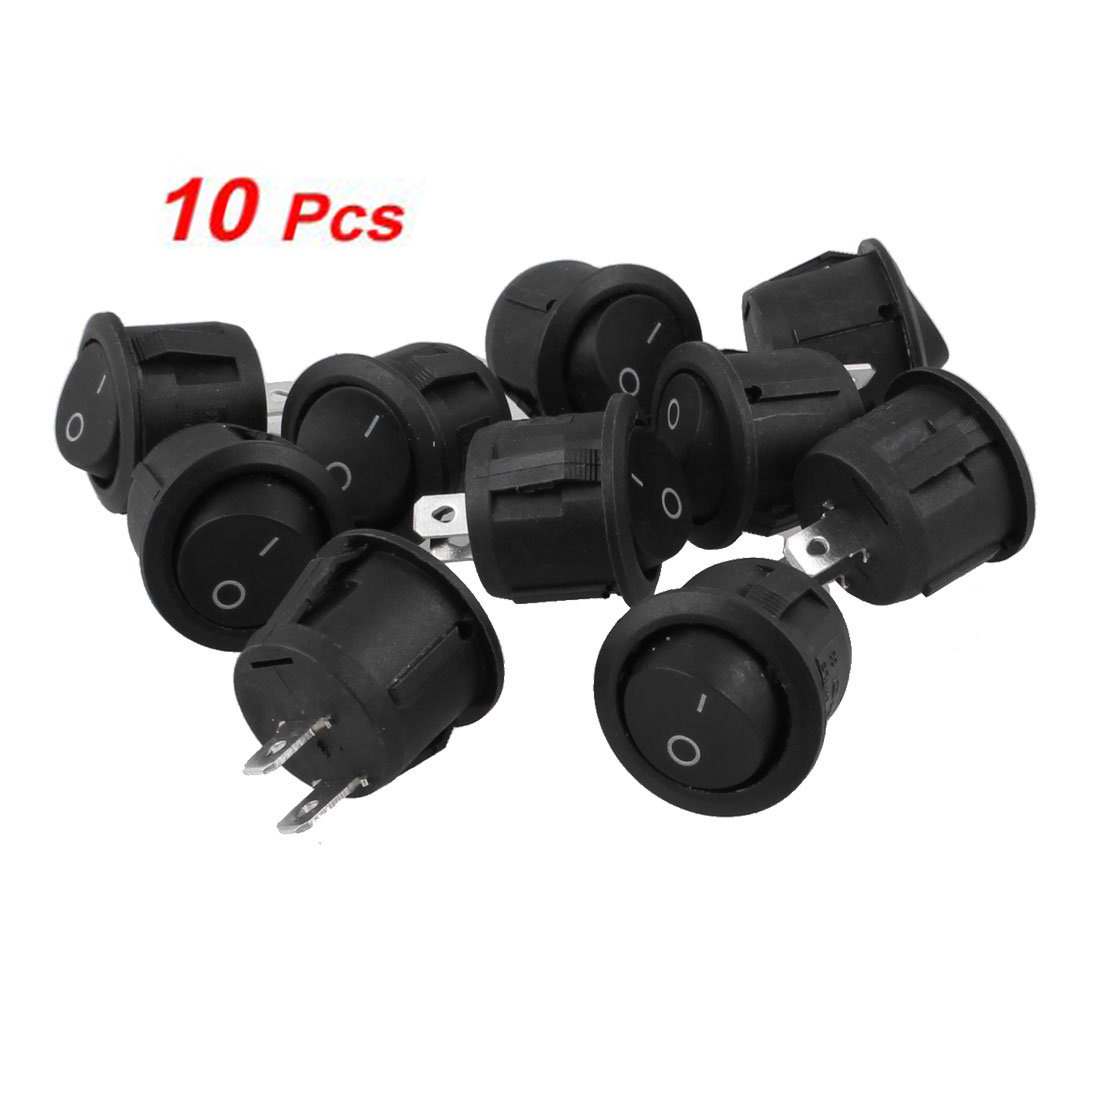 Promotion! 10Pcs AC 6A 10A 250V On Off Snap in SPST Round Boat Rocker Switch Black new mini 5pcs lot 2 pin snap in on off position snap boat button switch 12v 110v 250v t1405 p0 5